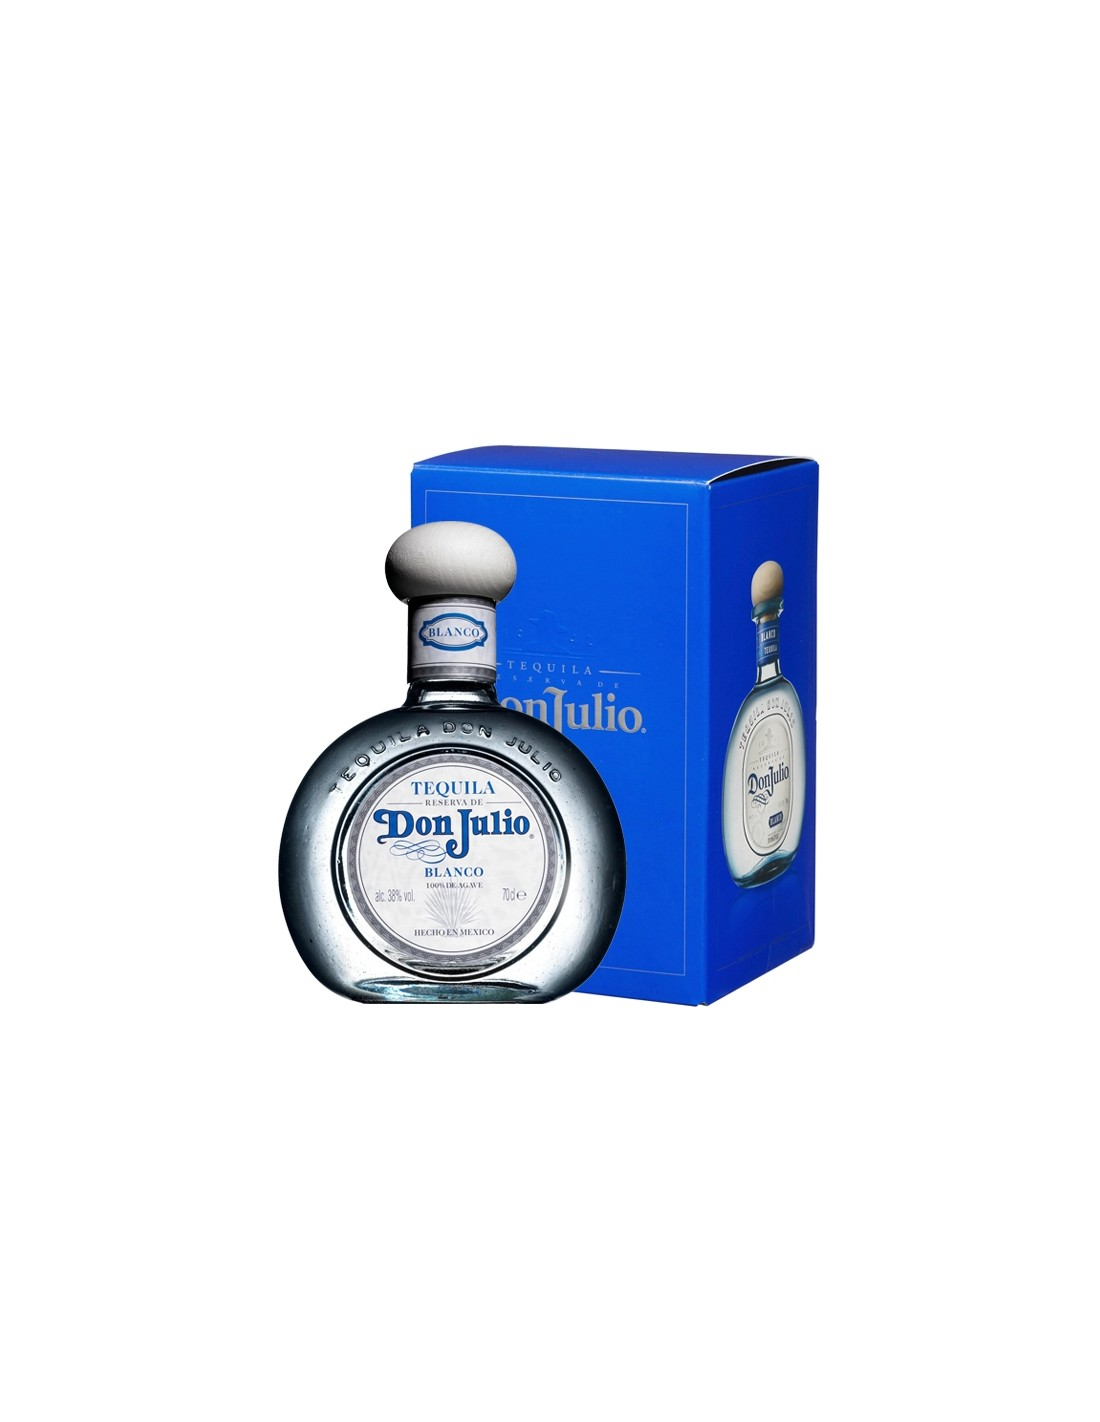 Tequila Don alba Julio Blanco 0.7L, 38% alc., Mexic